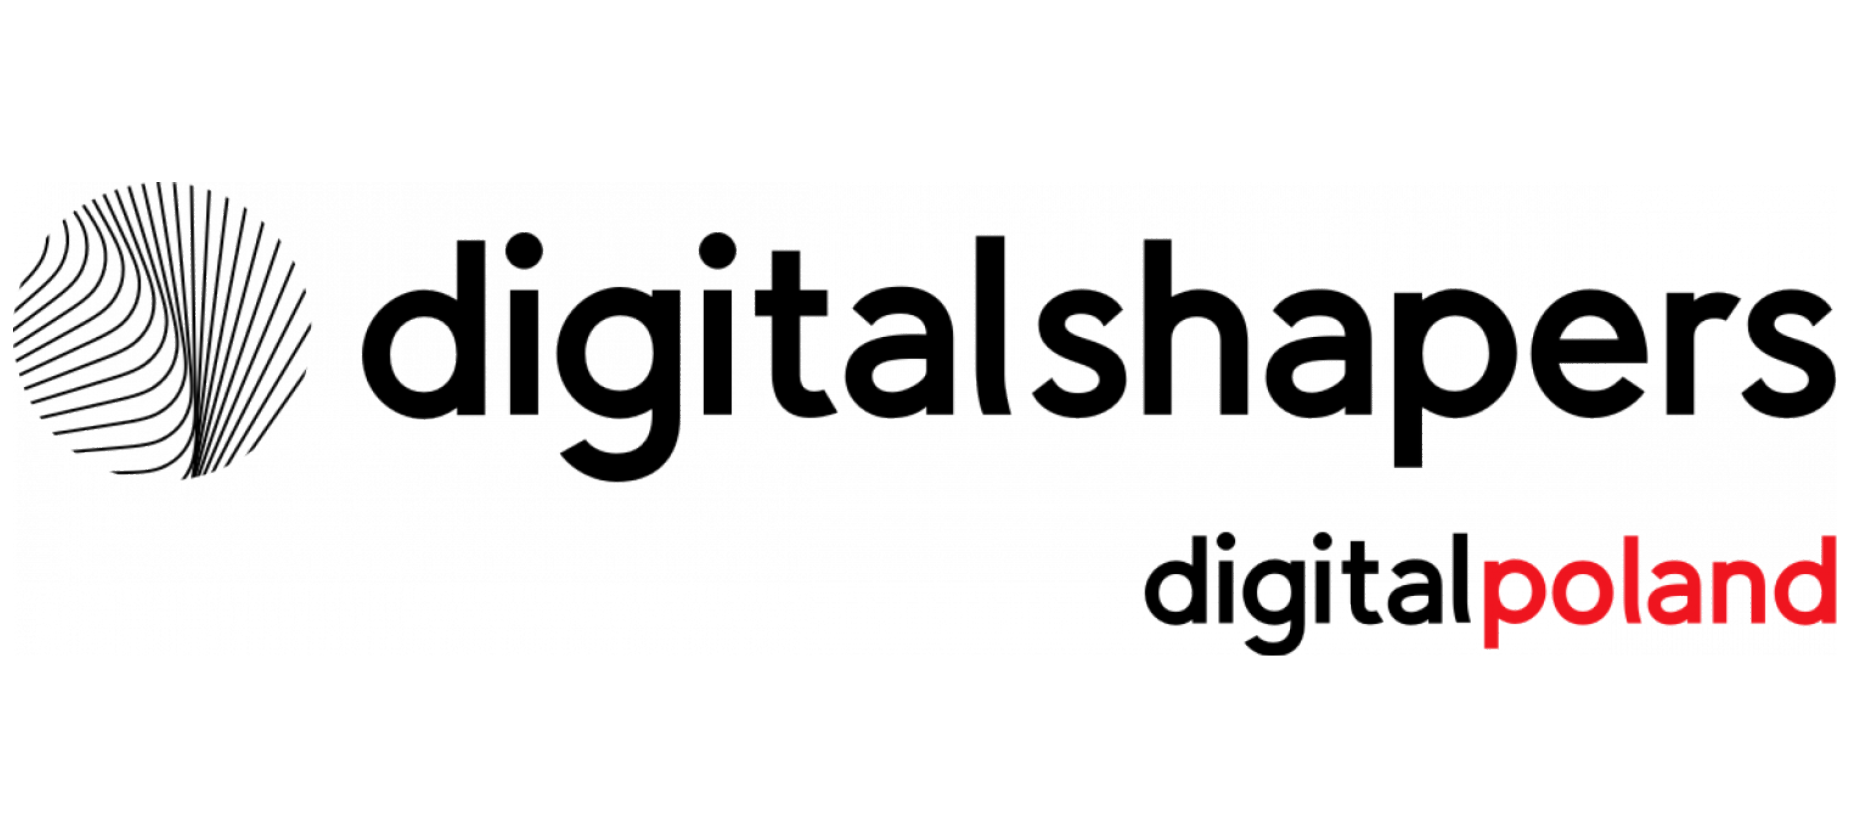 Digital Shapers Award 2018